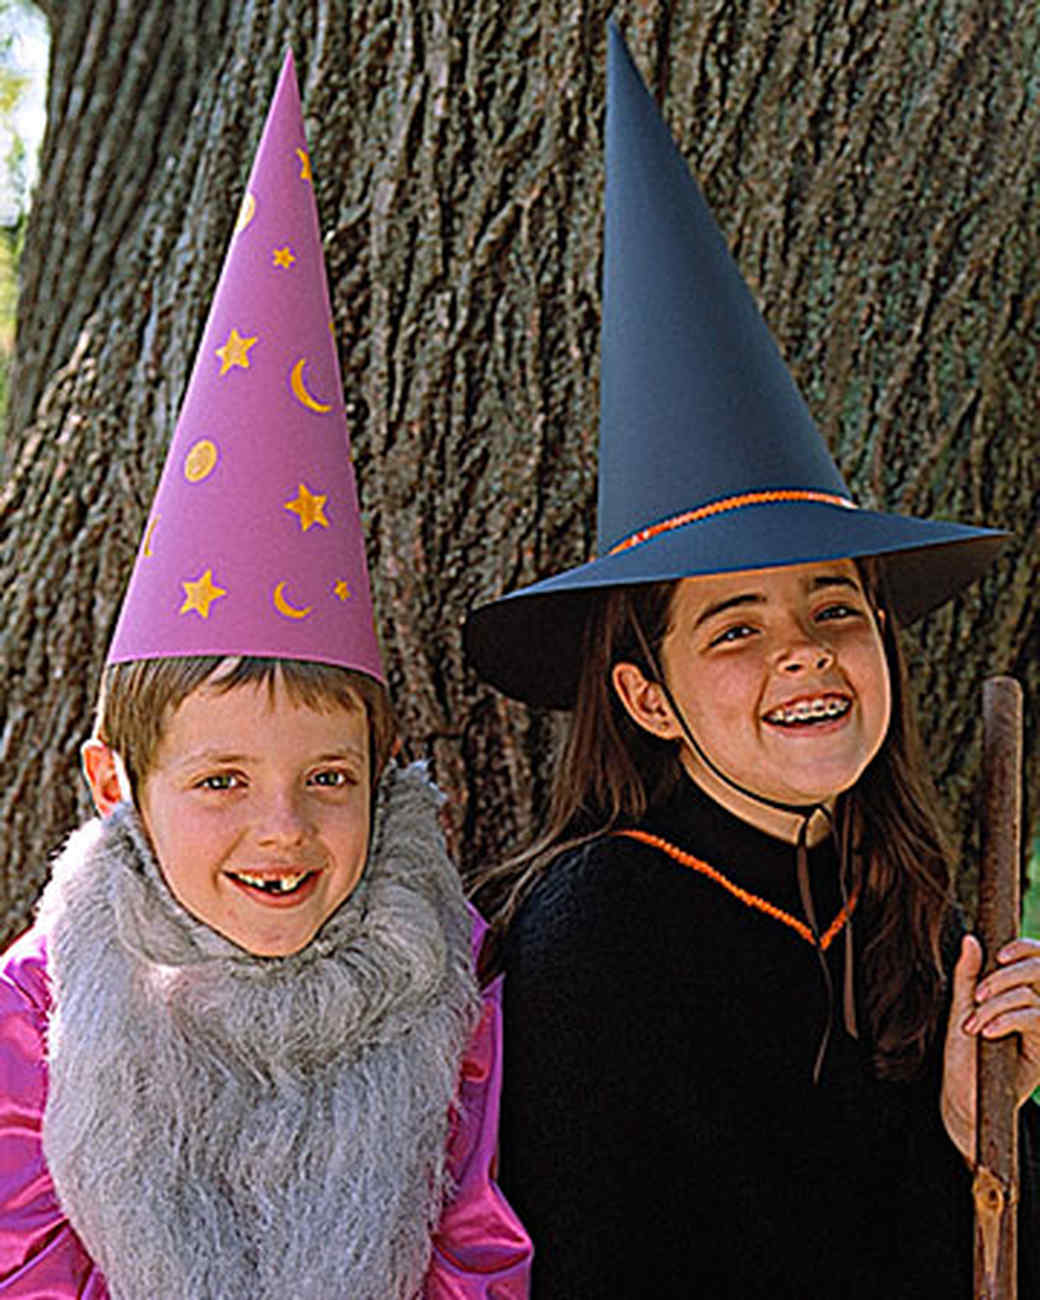 Wizard and Witch Costumes: Witches' Hats